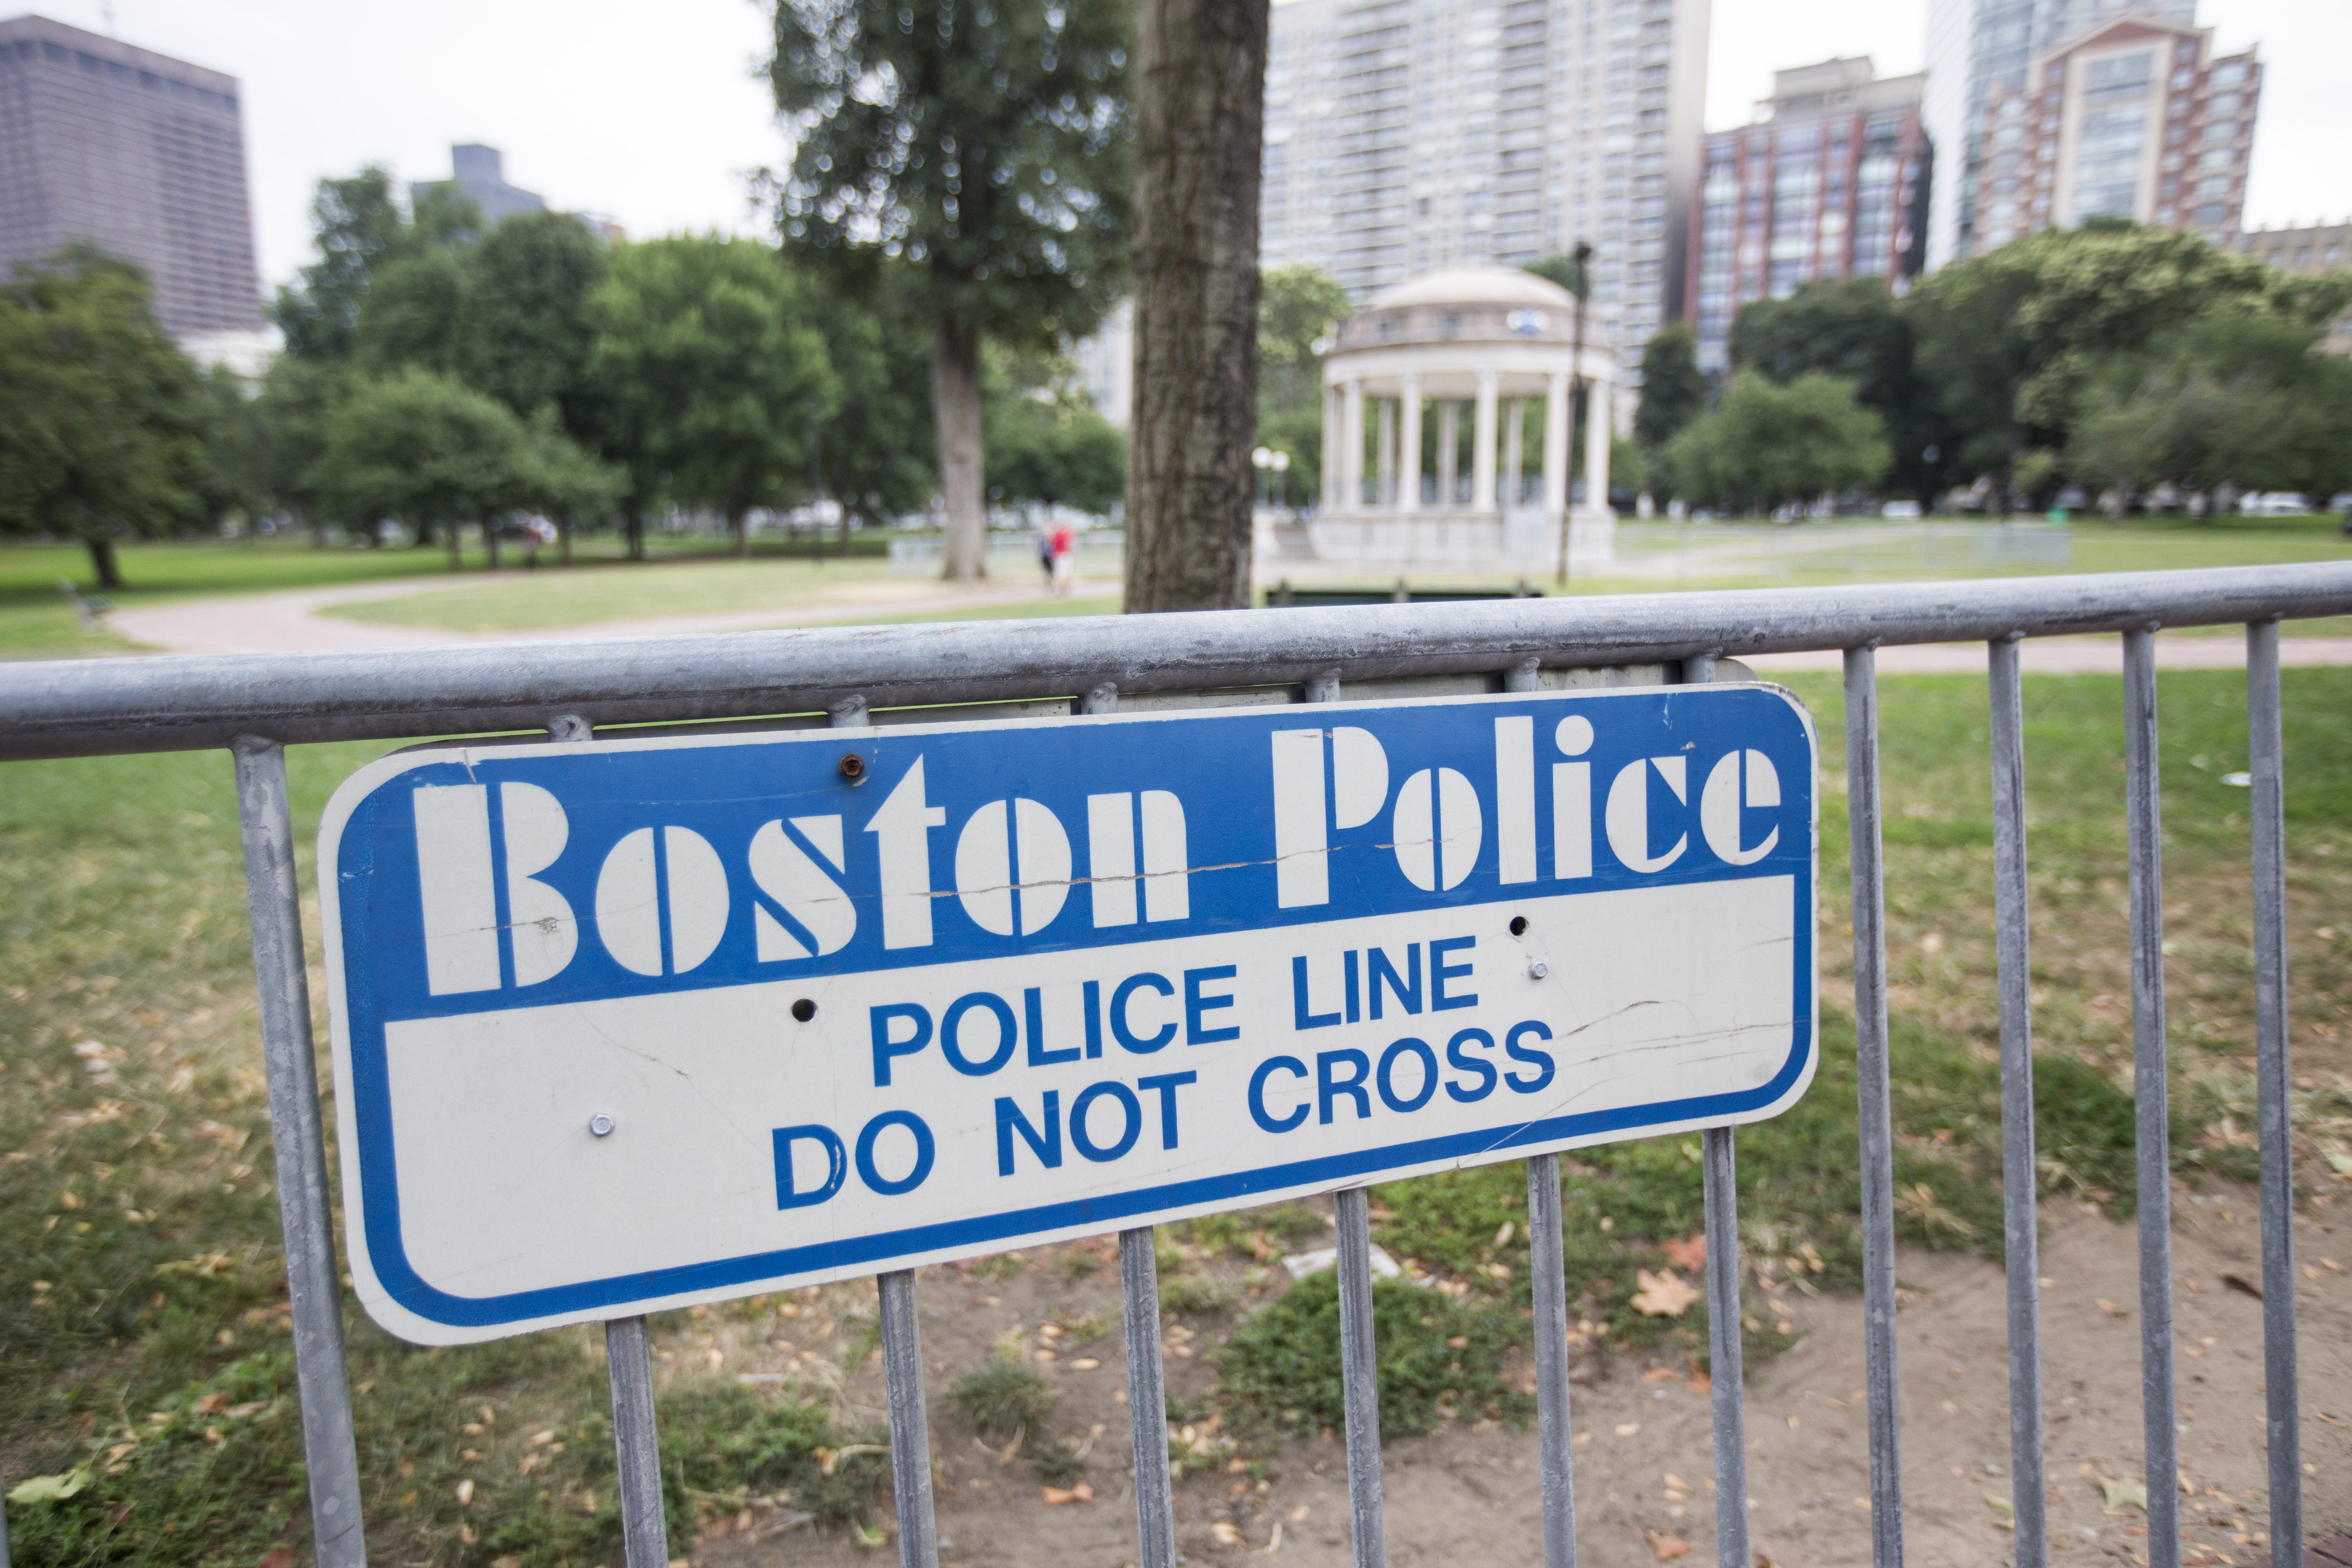 In the shadows of a racist past, Boston braces for a far-right rally